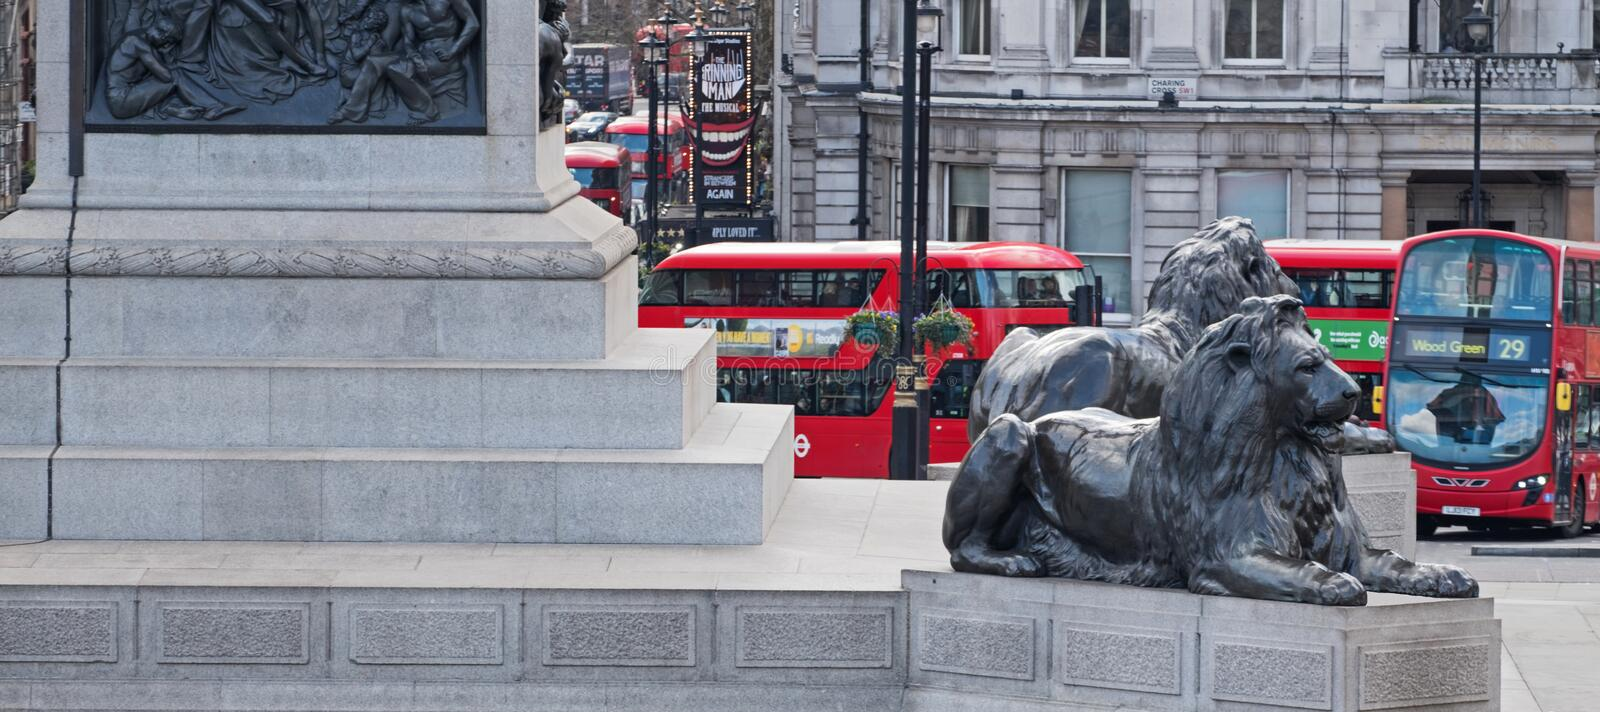 Lions and buses in central London stock photos